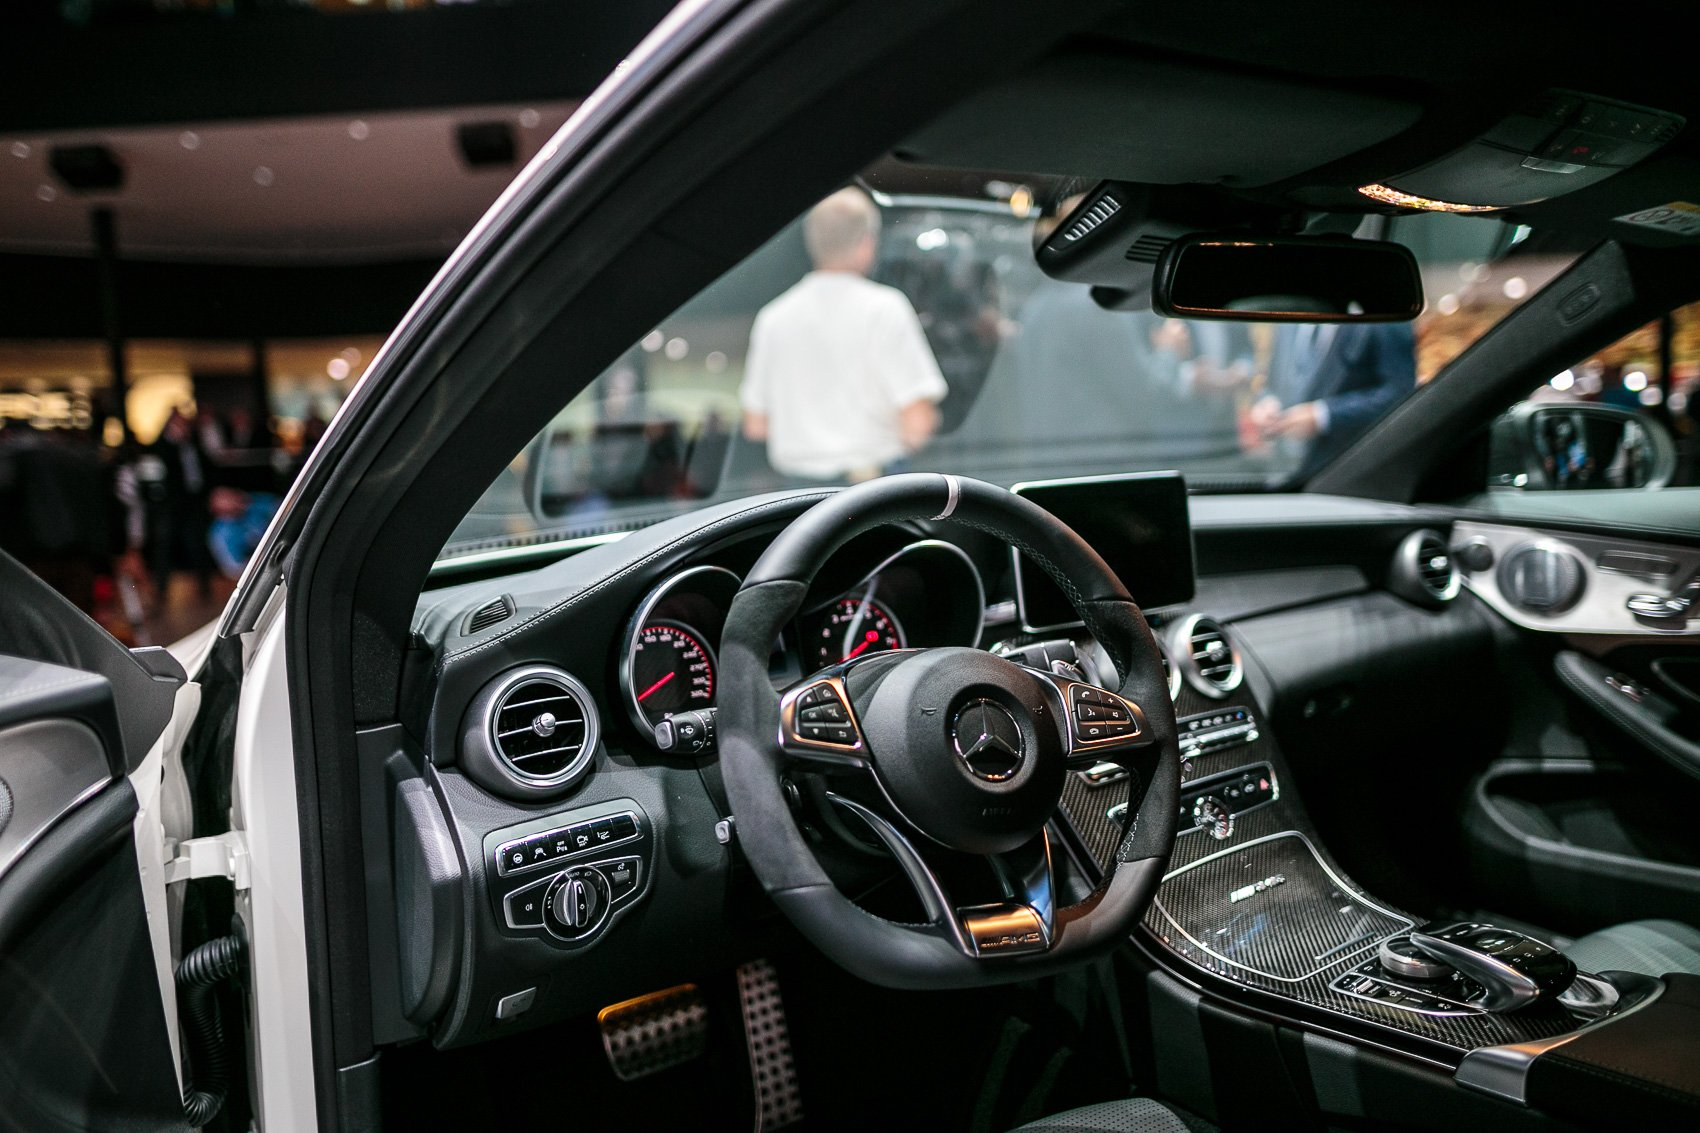 https://www.autoguide.com/blog/wp-content/gallery/mercedes-benz-c-class-coupe-september-16-2015/Mercedes-Benz-C-Class-Coupe-Interior-01.jpg